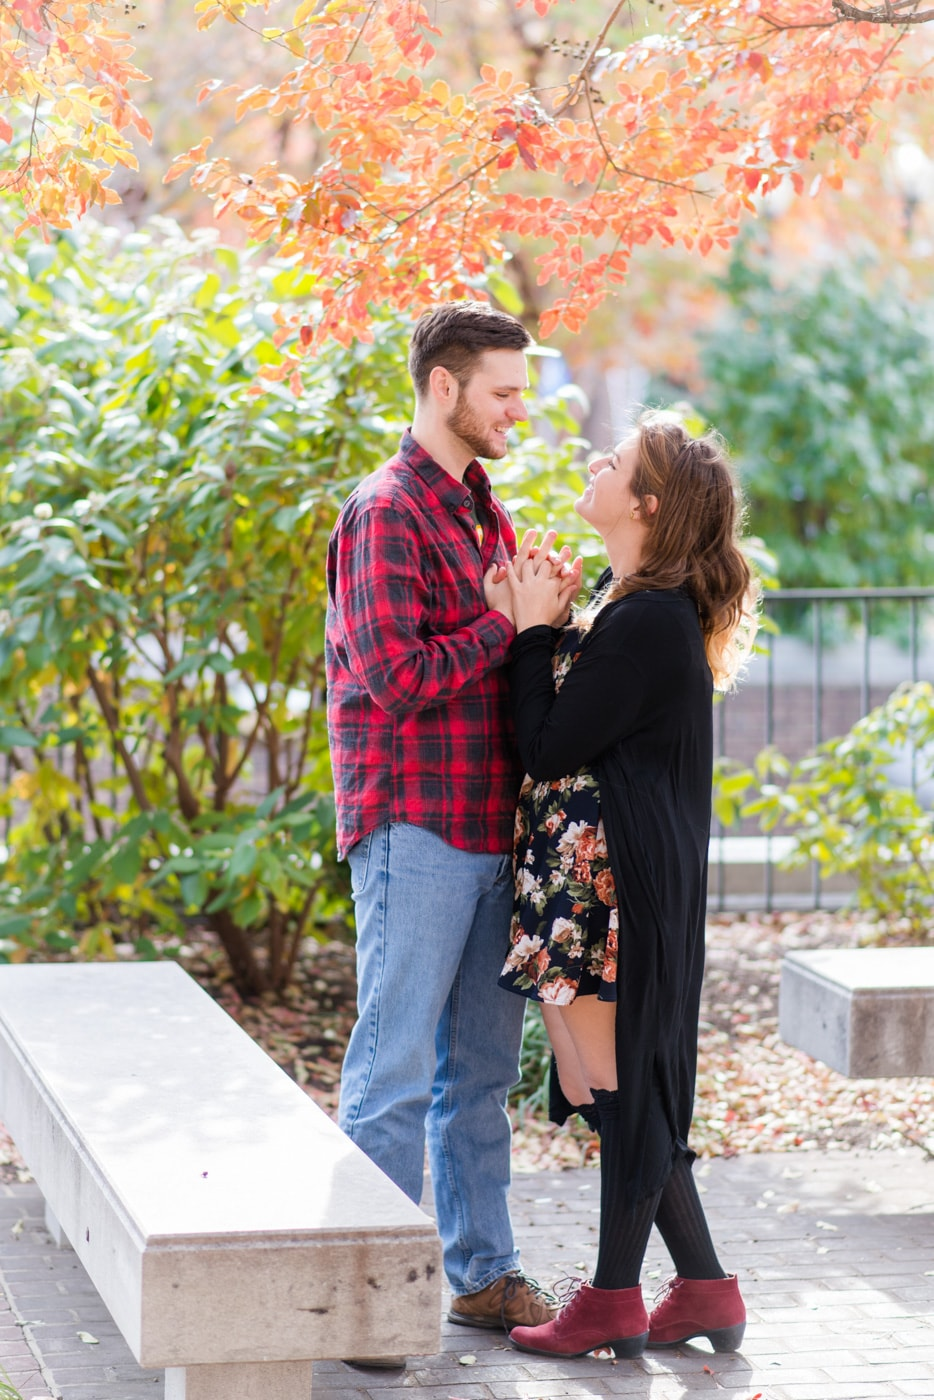 A young couple hold hands and smile at each other surrounded by fall foliage in Old Town Alexandria